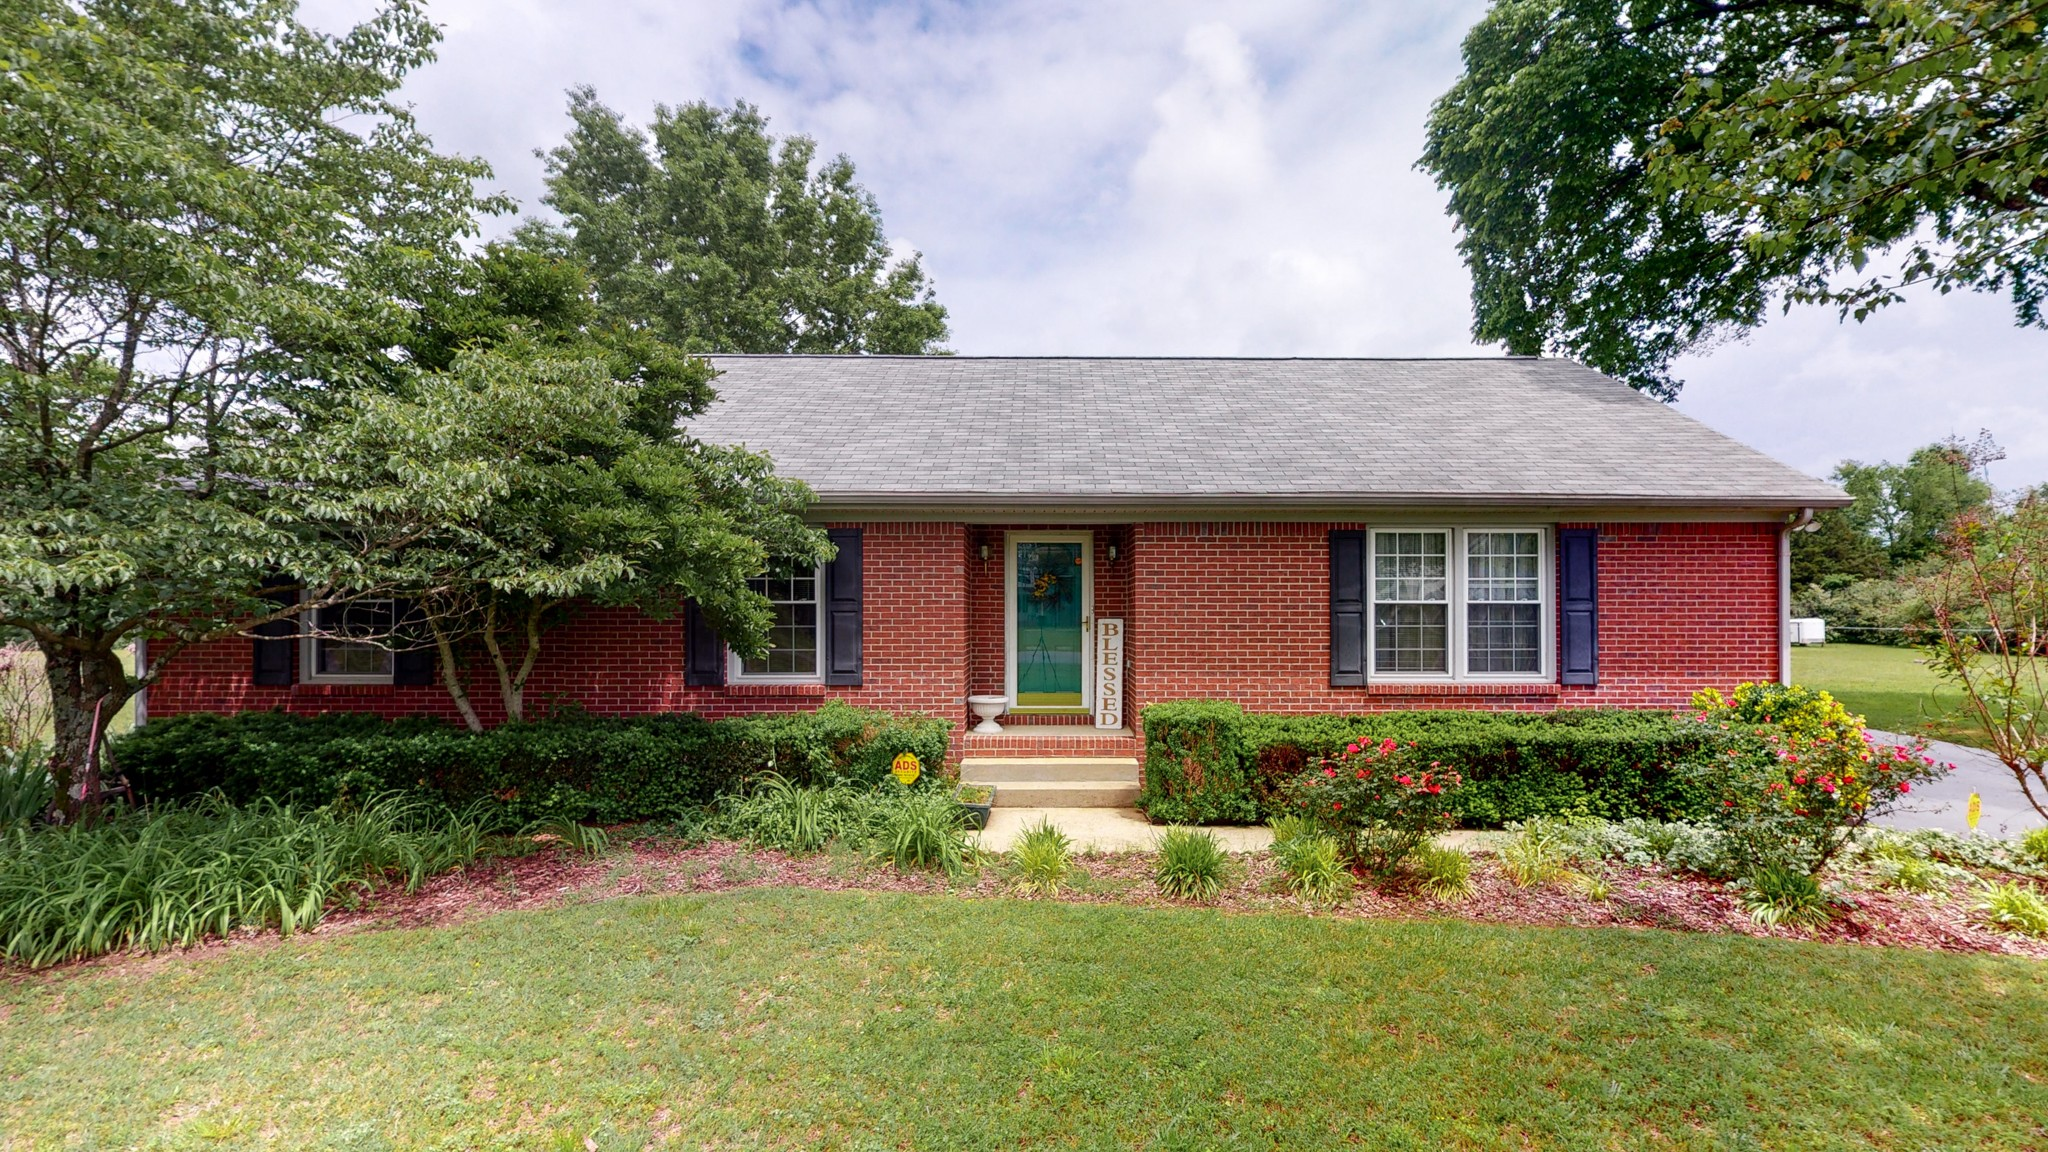 """One level all brick home on a beautiful level lot w/mature trees*Hardwood floors in the great room w/trey ceiling and gas fireplace*Kitchen w/island, pantry, and newer dishwasher*Master Bedroom includes a private bath and walk-in closet*Attached 2 car carport/patio area*Oversized 2 car garage w/electricity, workshop, and gas wall heater*Lean to shed on the side of the garage*Detached building with many potential uses for hobbies, office, """"she-shed"""" or """"man cave' plus extra storage area*"""